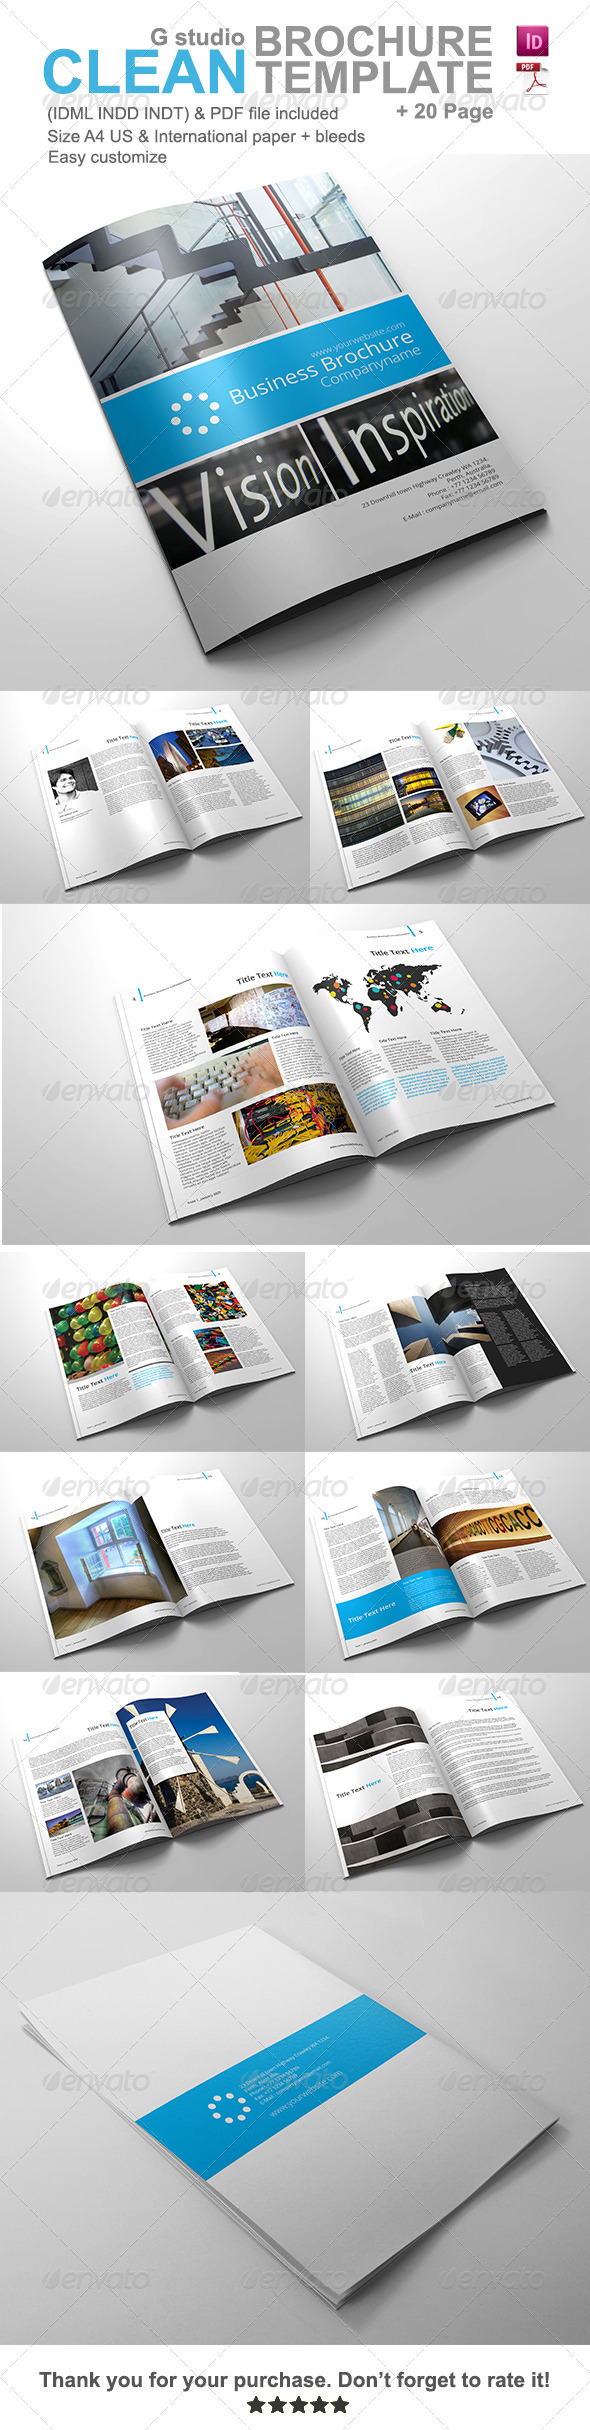 Gstudio Clean Brochure Template V2 - Corporate Brochures